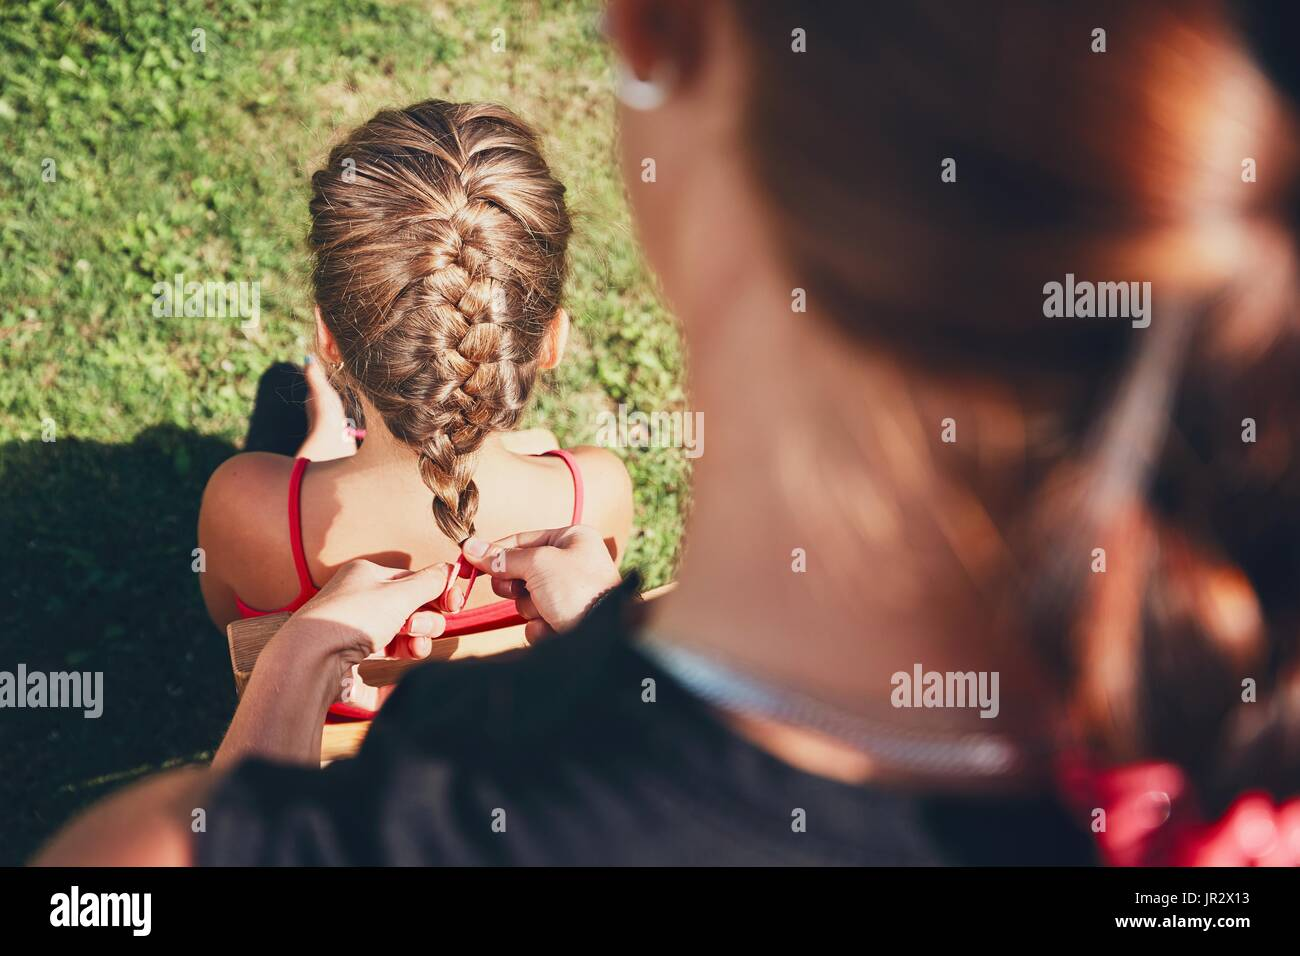 Young woman making hair braids of the little girl on the garden in the countryside. - Stock Image